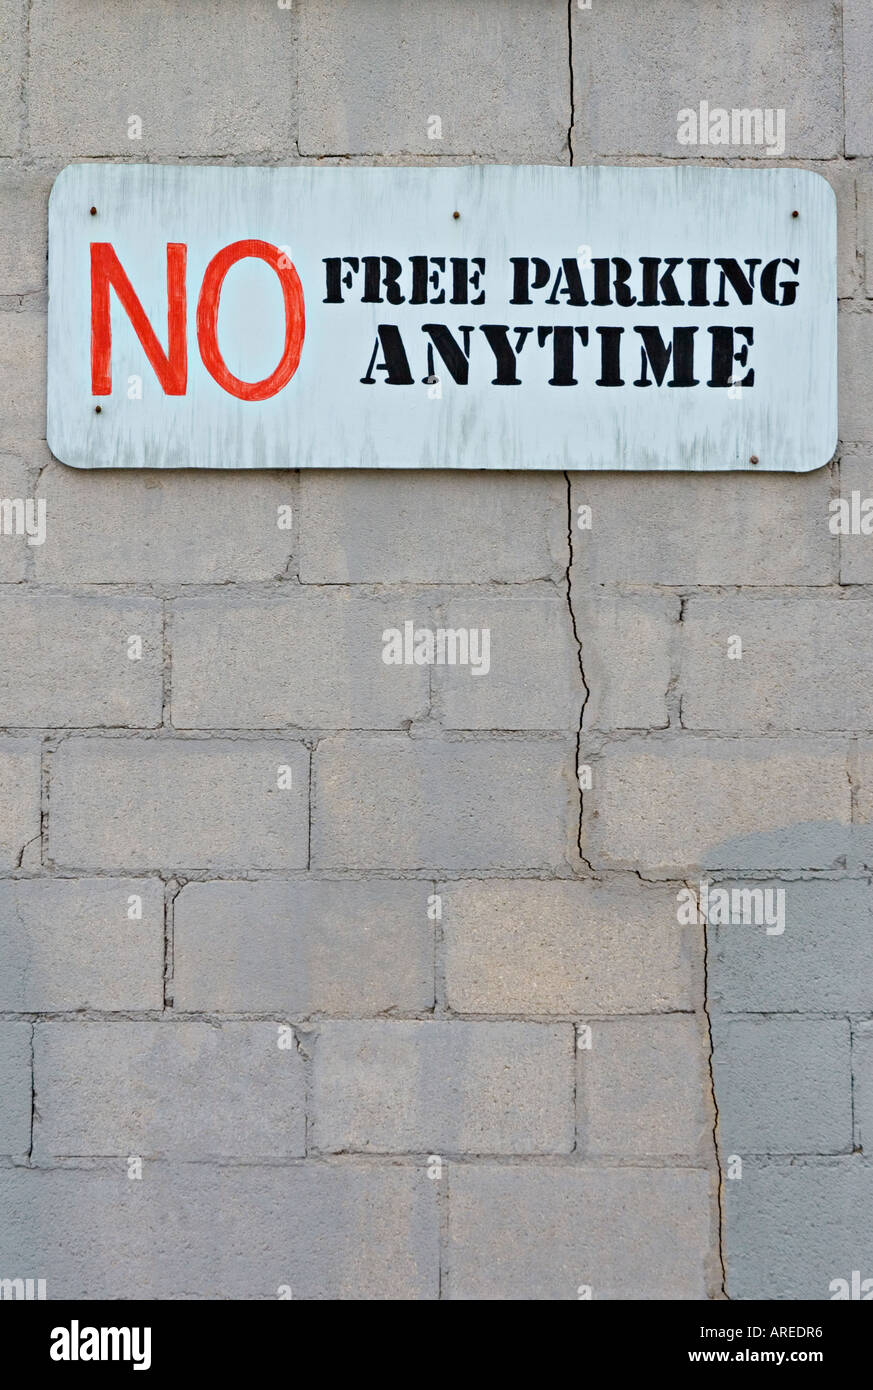 NO FREE PARKING ANYTIME sign - Stock Image